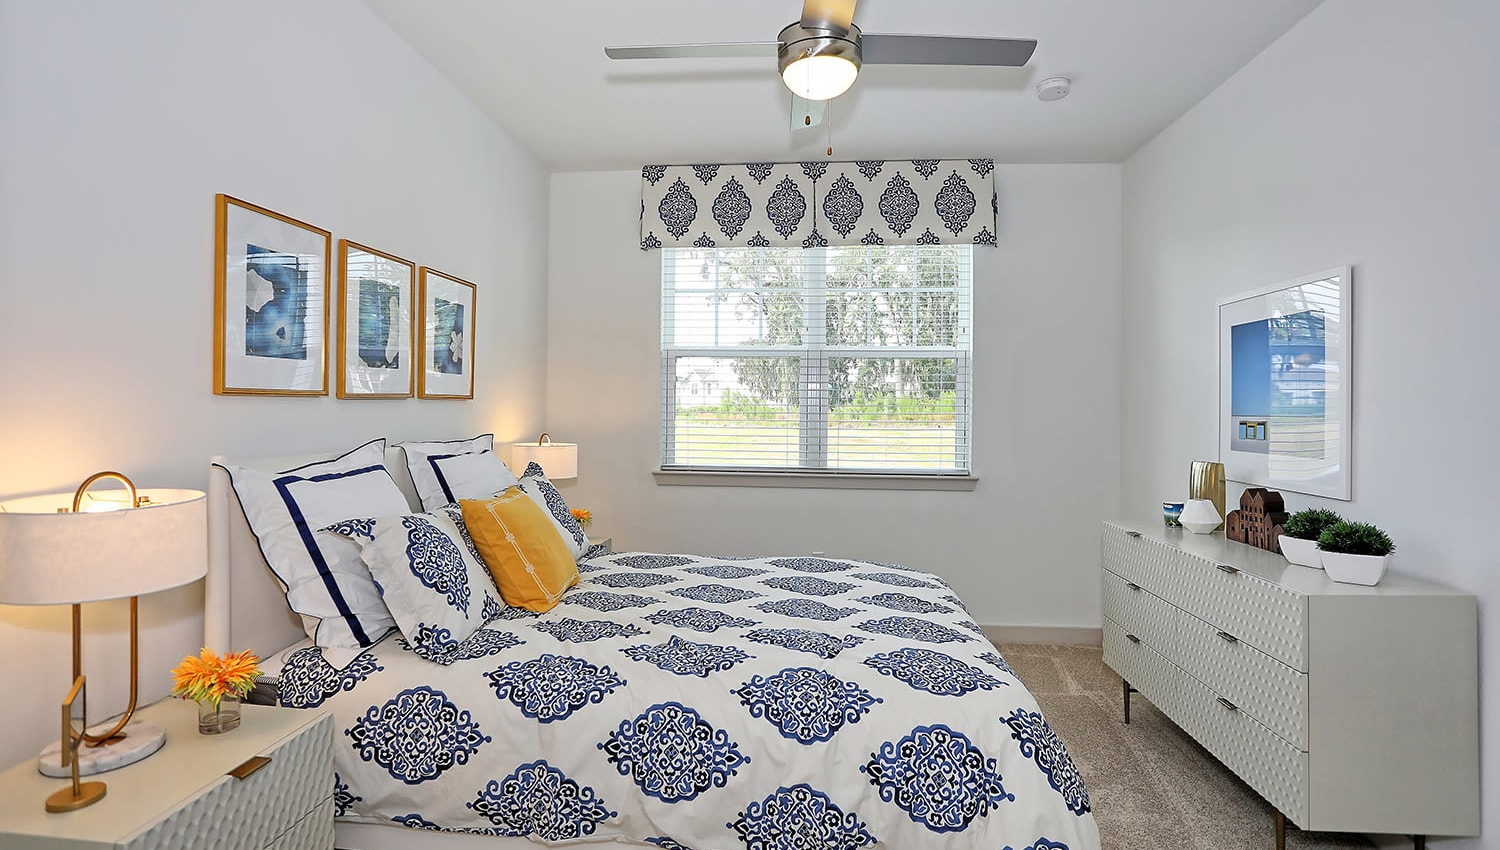 Ceiling fan and plush carpeting in a model home's master bedroom at The Slate in Savannah, Georgia